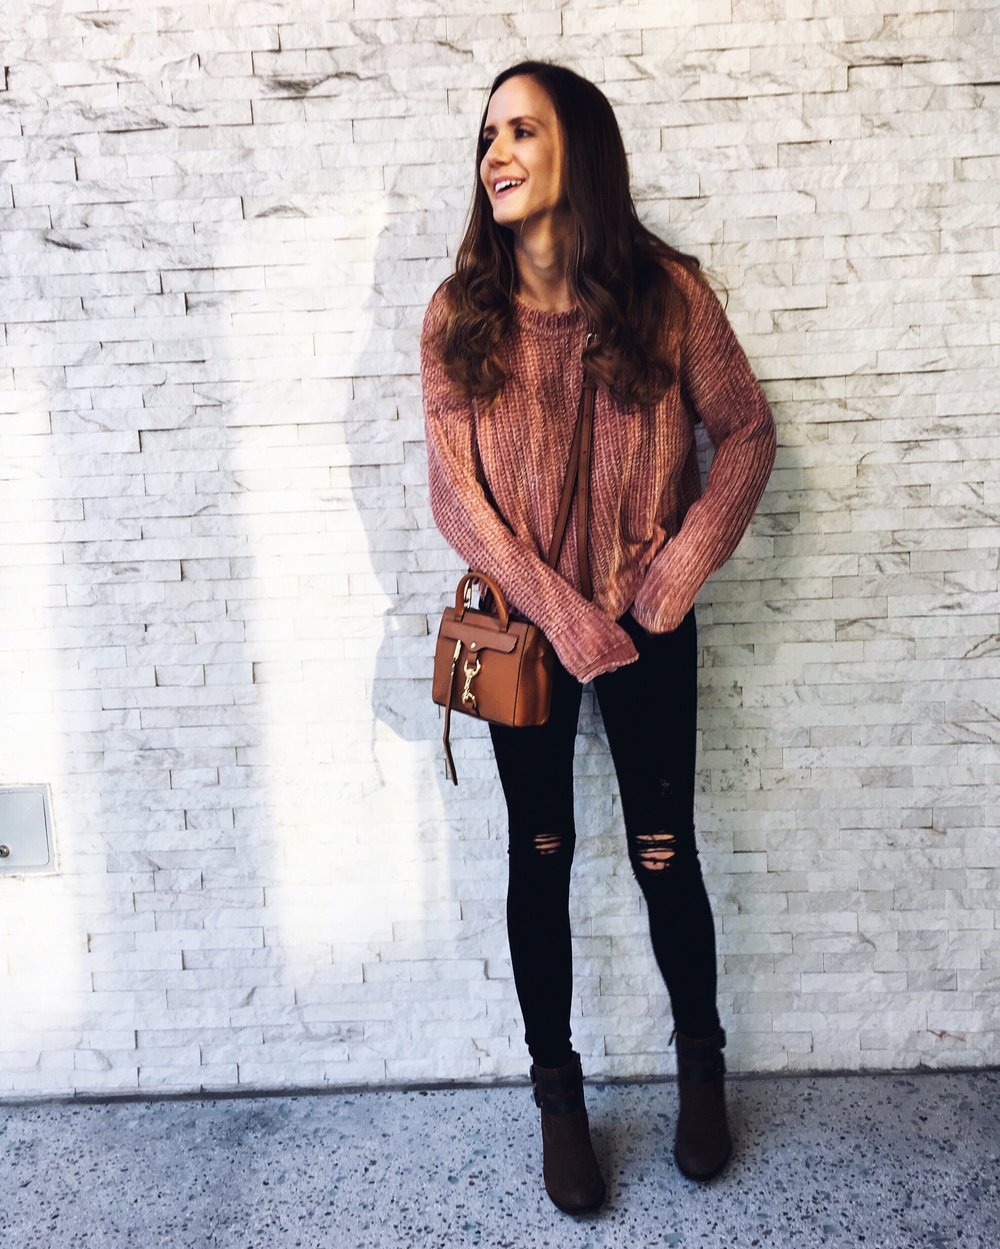 Shop the Look Below.  Zara Sweater  - Similar  HERE  | AG Jeans, Similar  here  |  Franco Sarto Booties  |  Rebecca Minkoff Bag